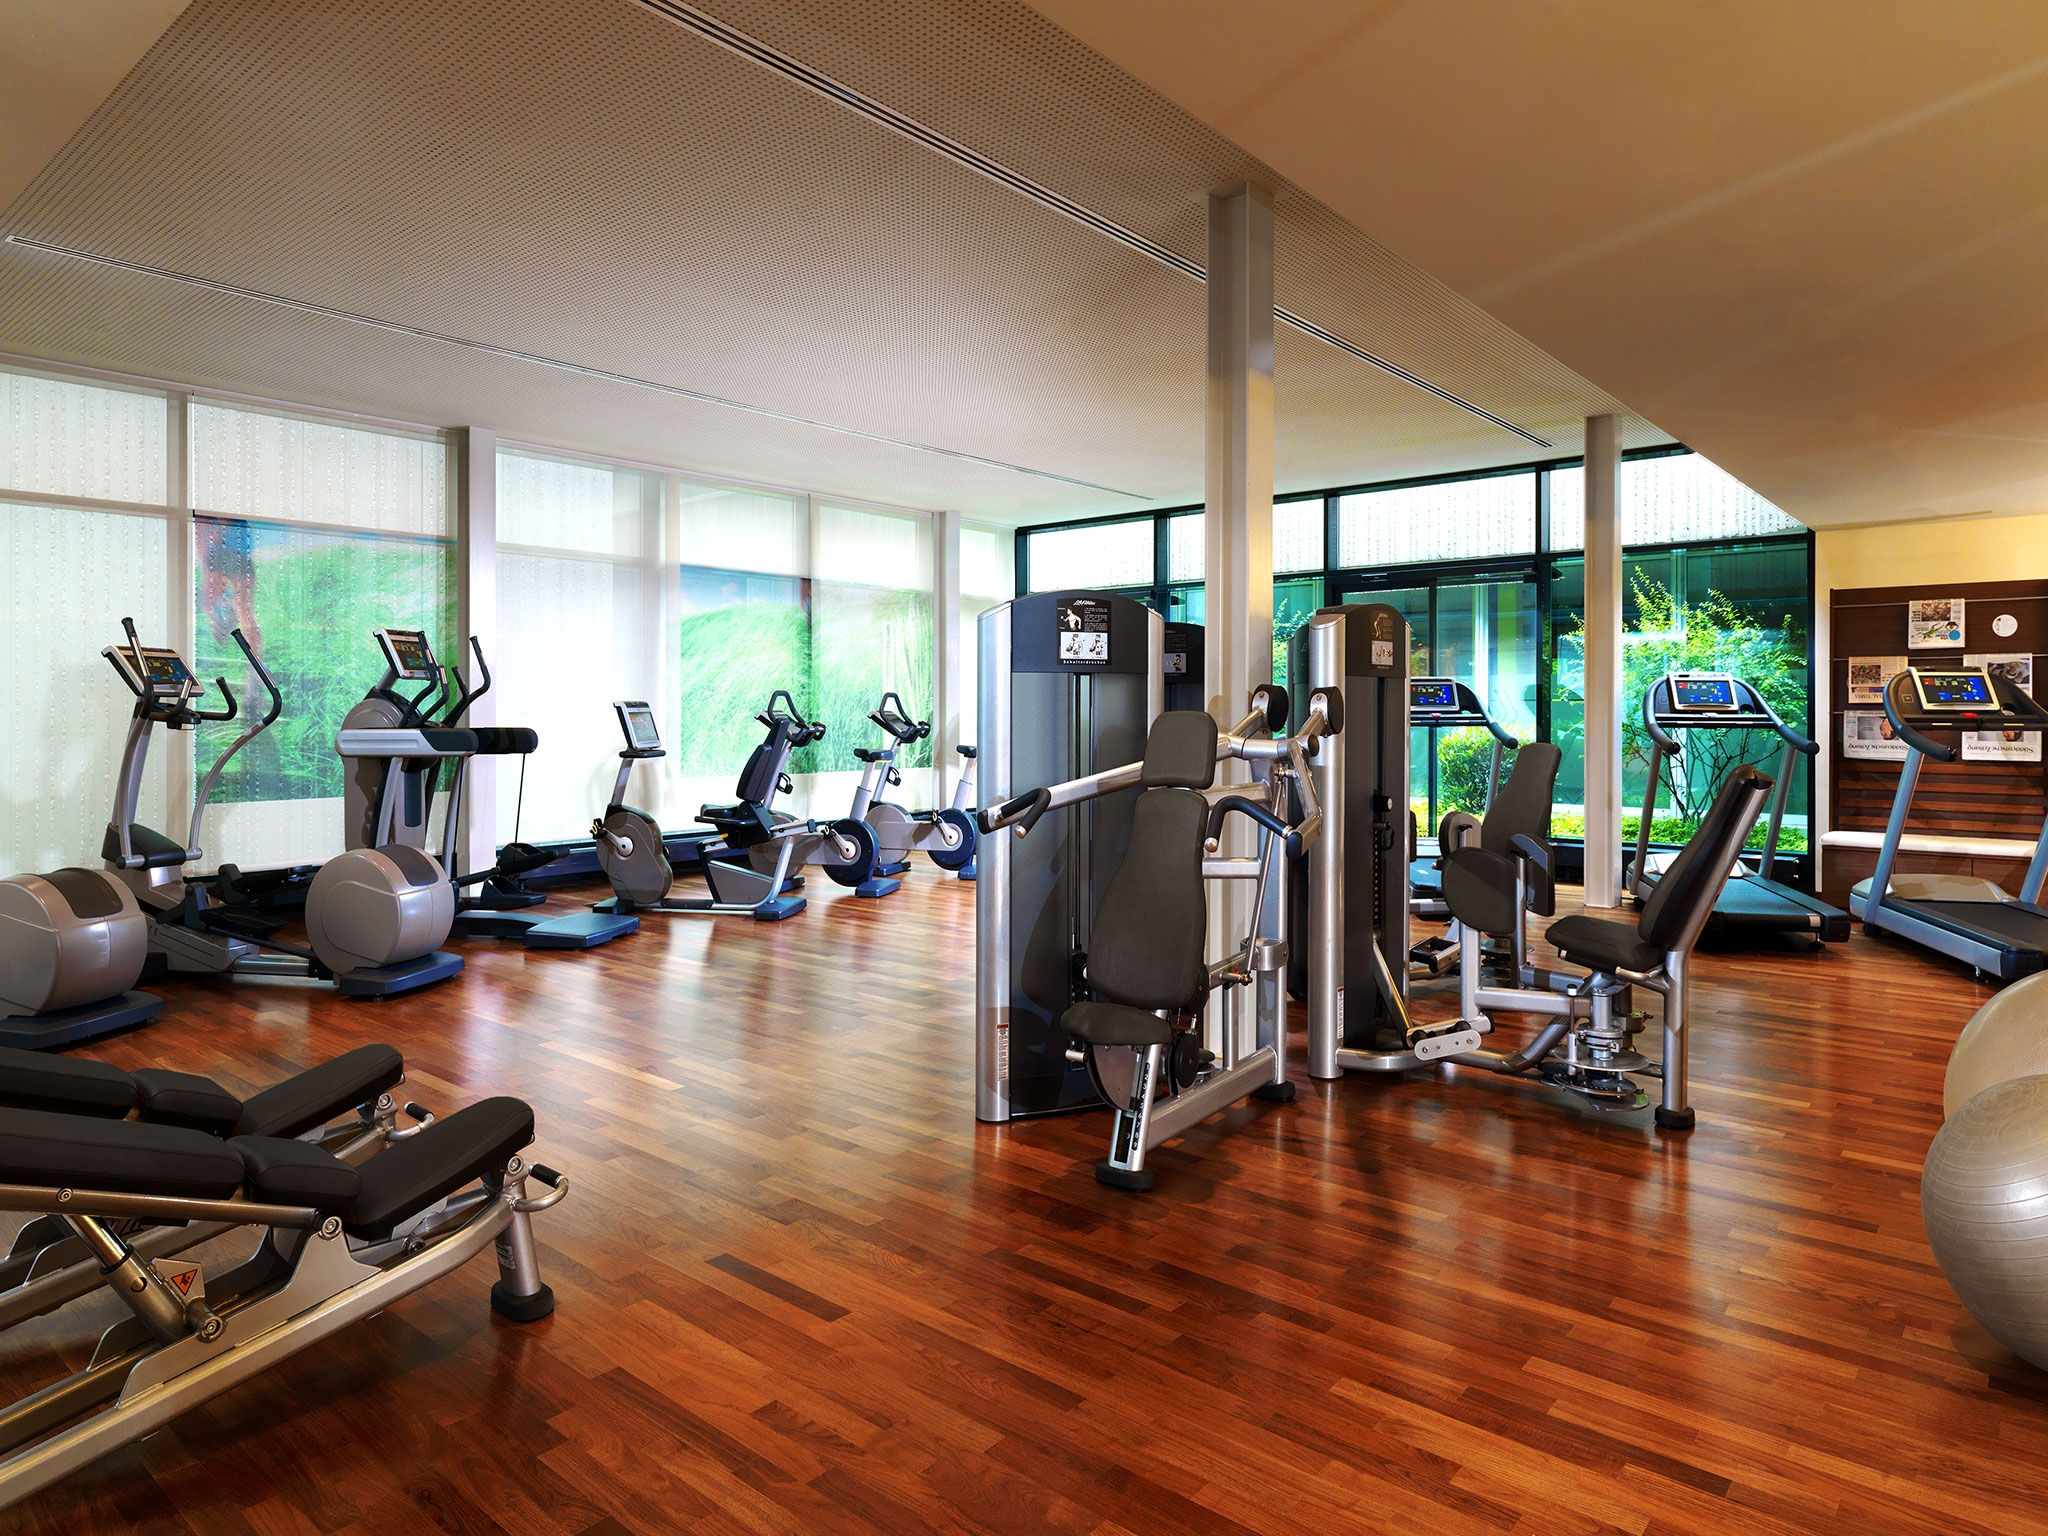 Westin Workout - The Westin Grand